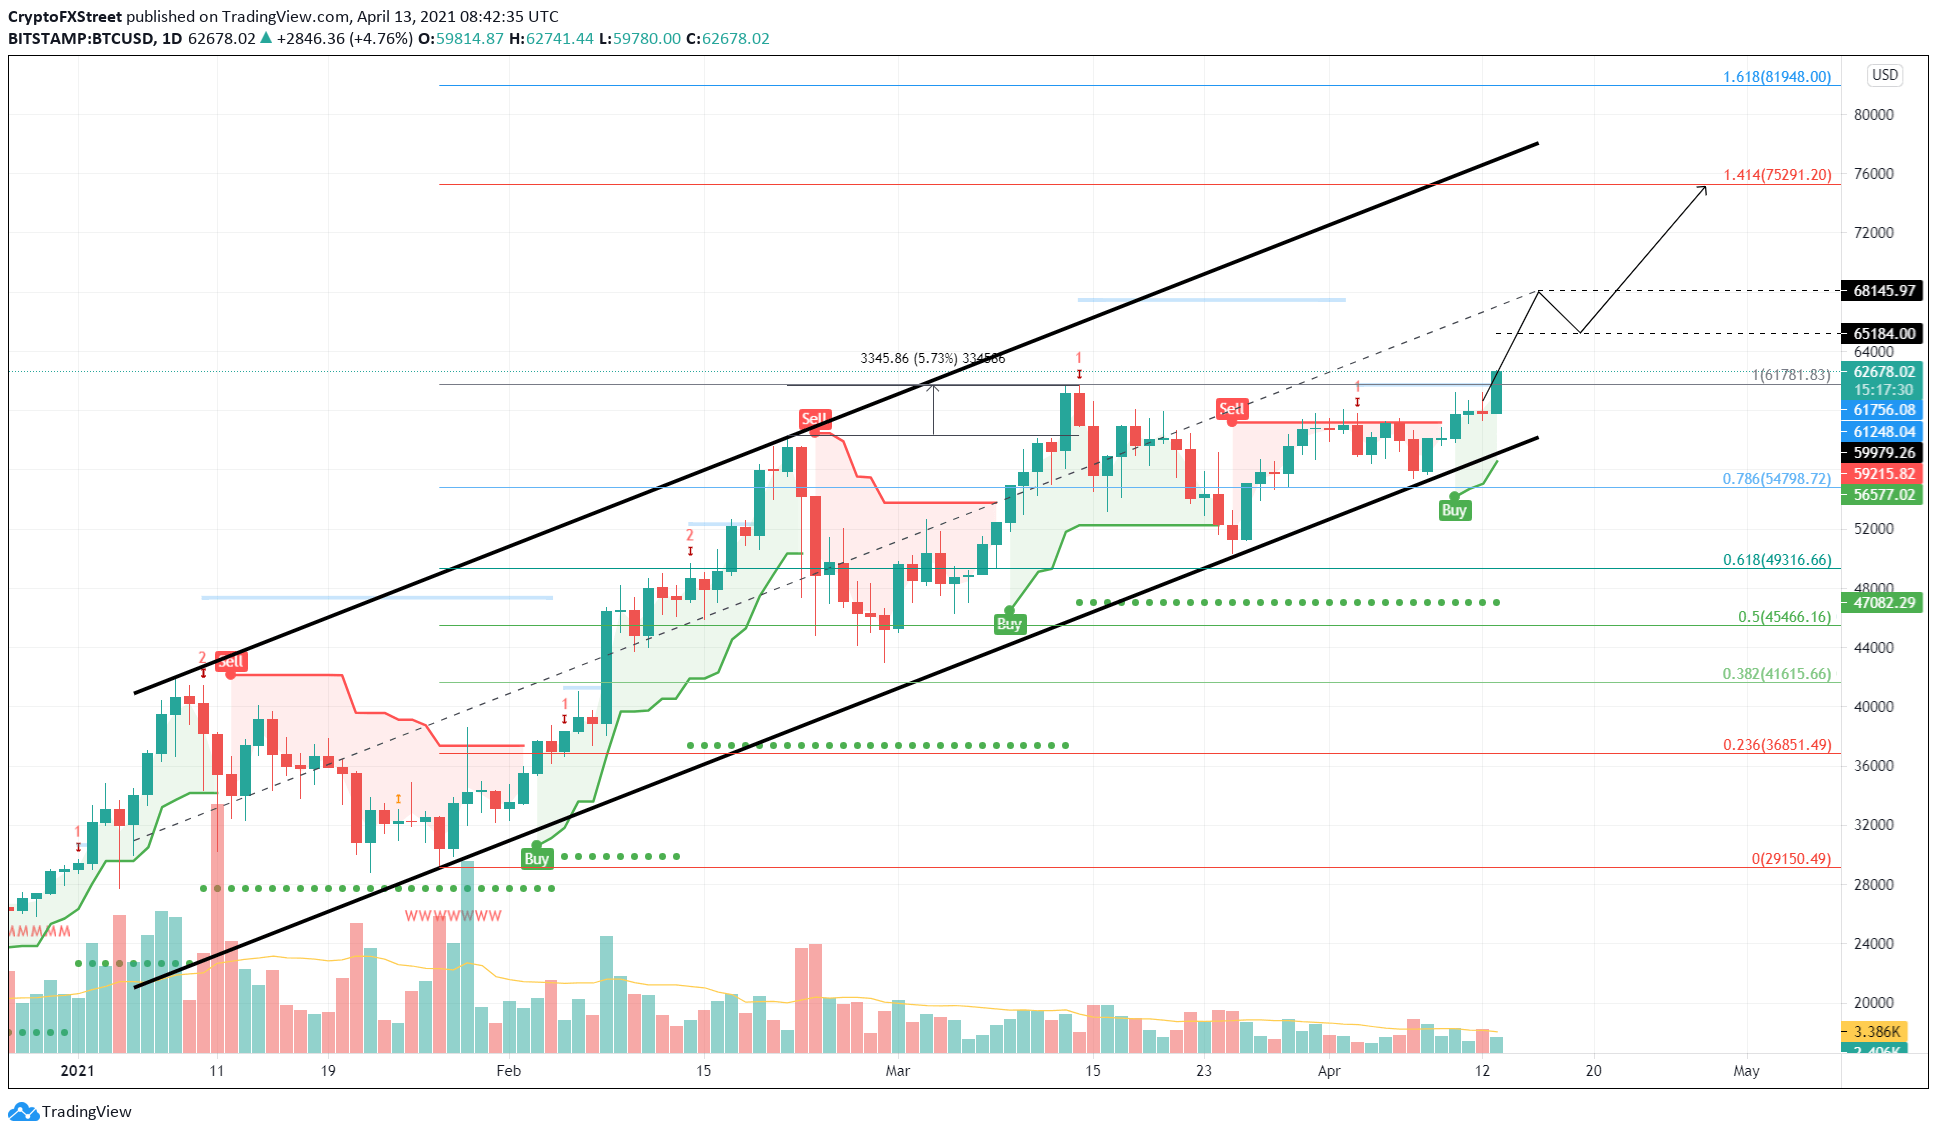 BTC/USD 1-day chart